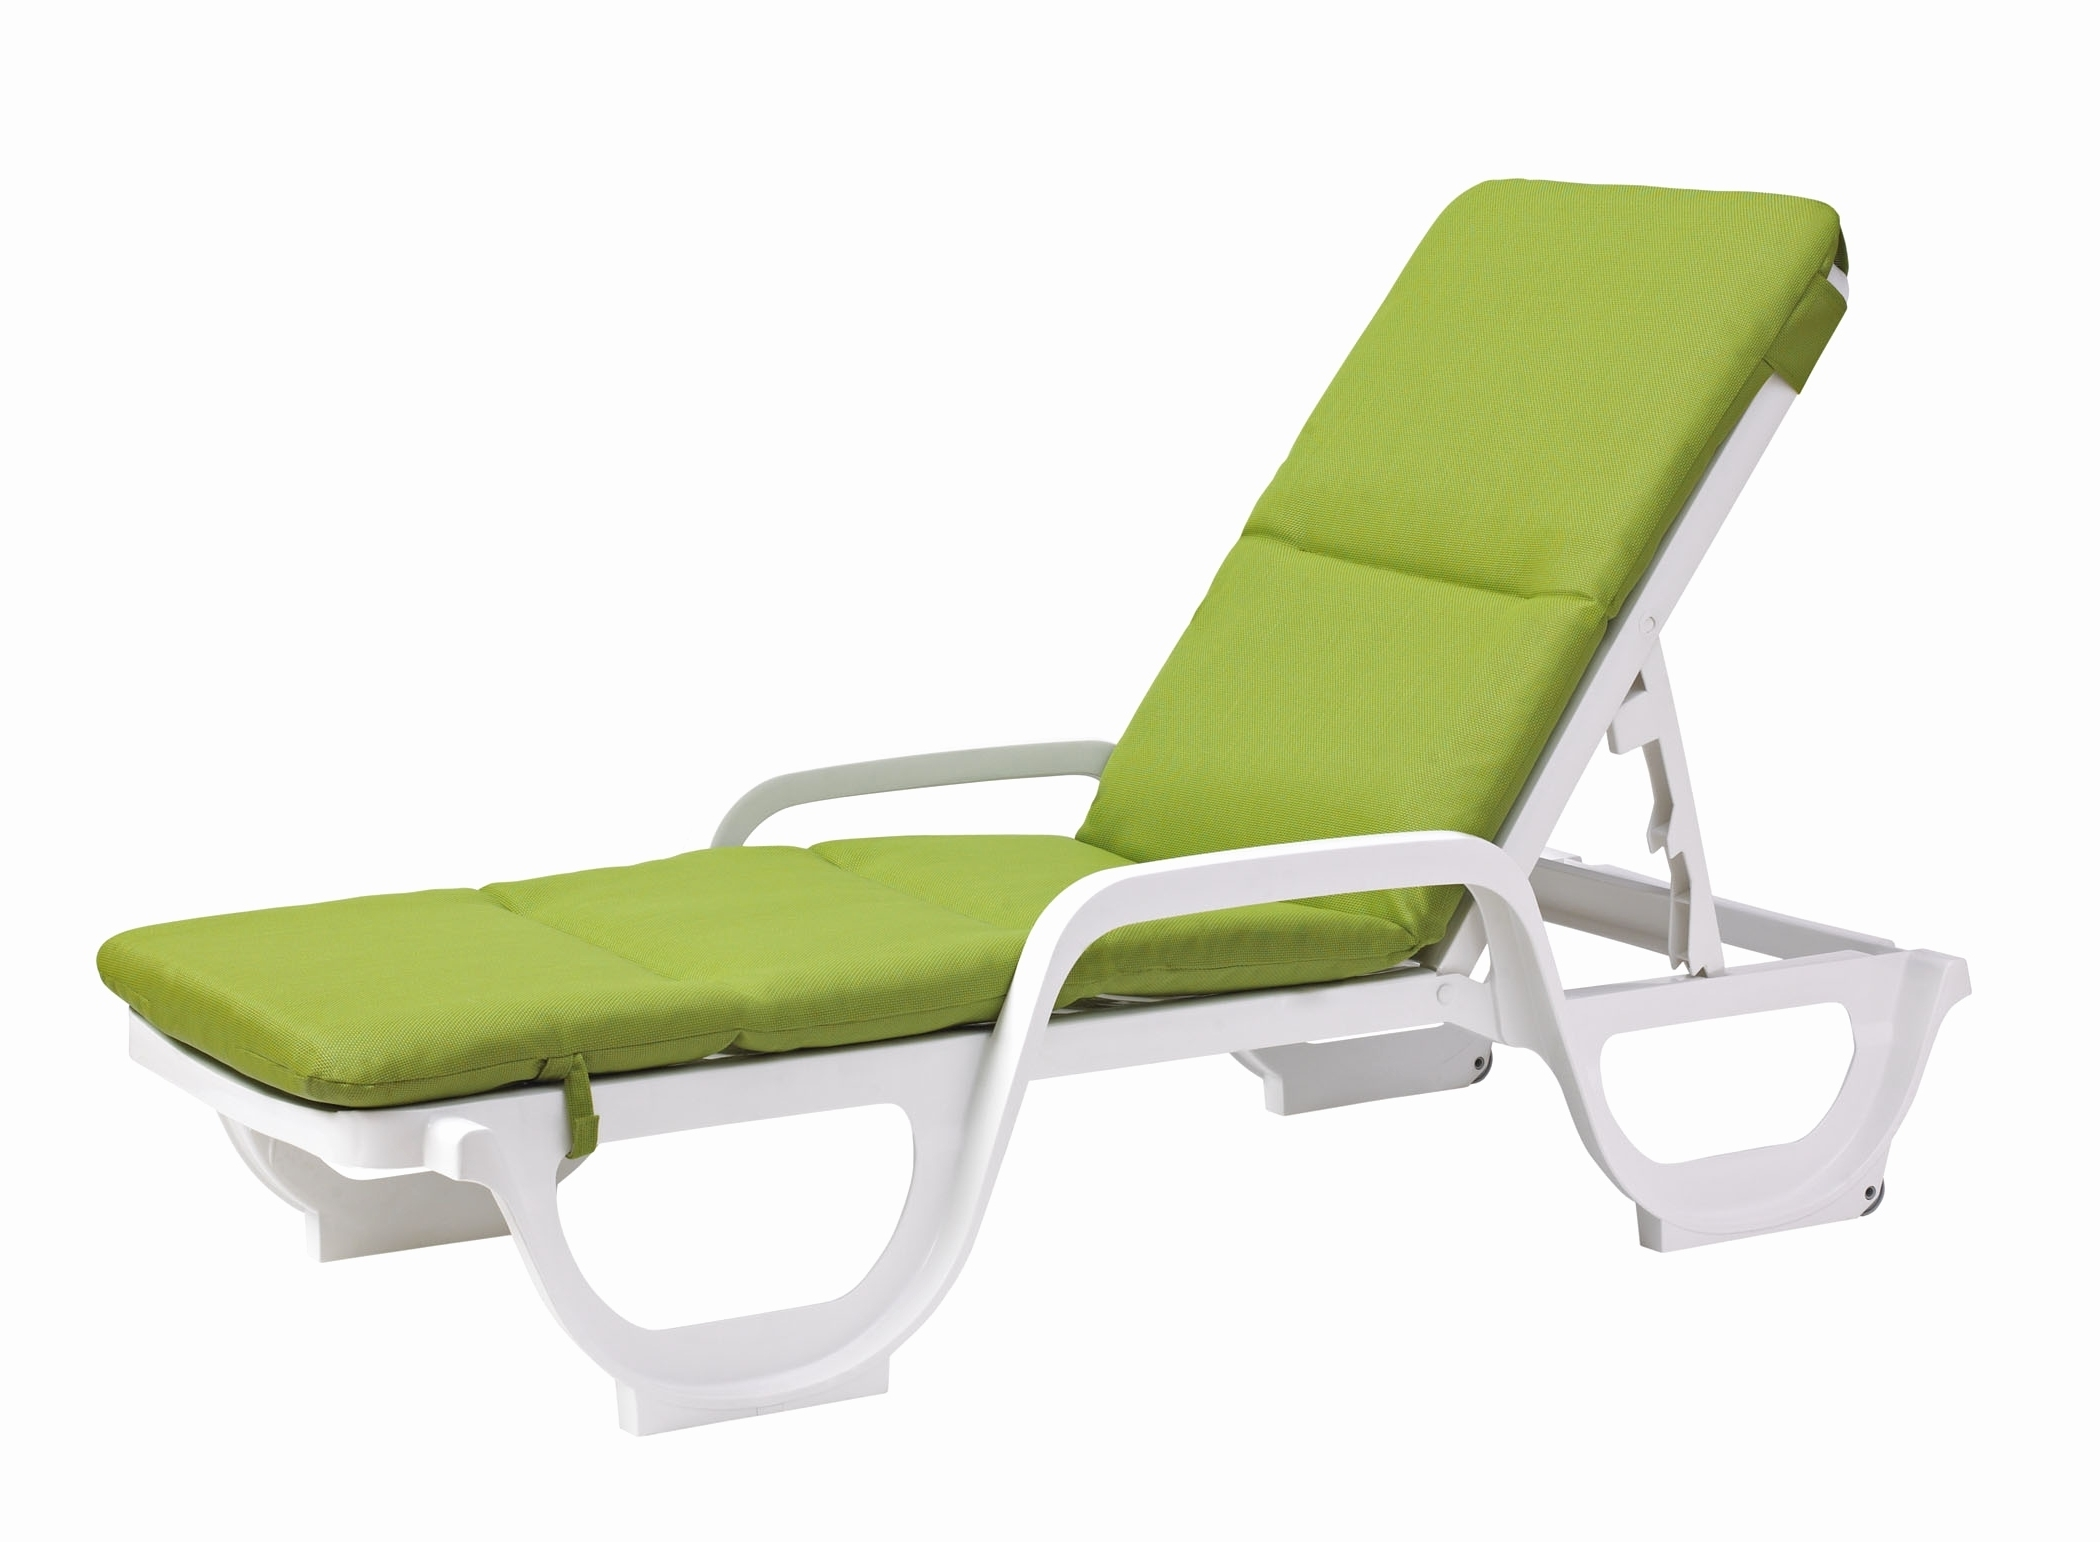 Atlanta Chaise Lounge Chairs With Most Up To Date 31 Awesome Cheap Lounge Chair Pictures (31 Photos) (View 2 of 15)